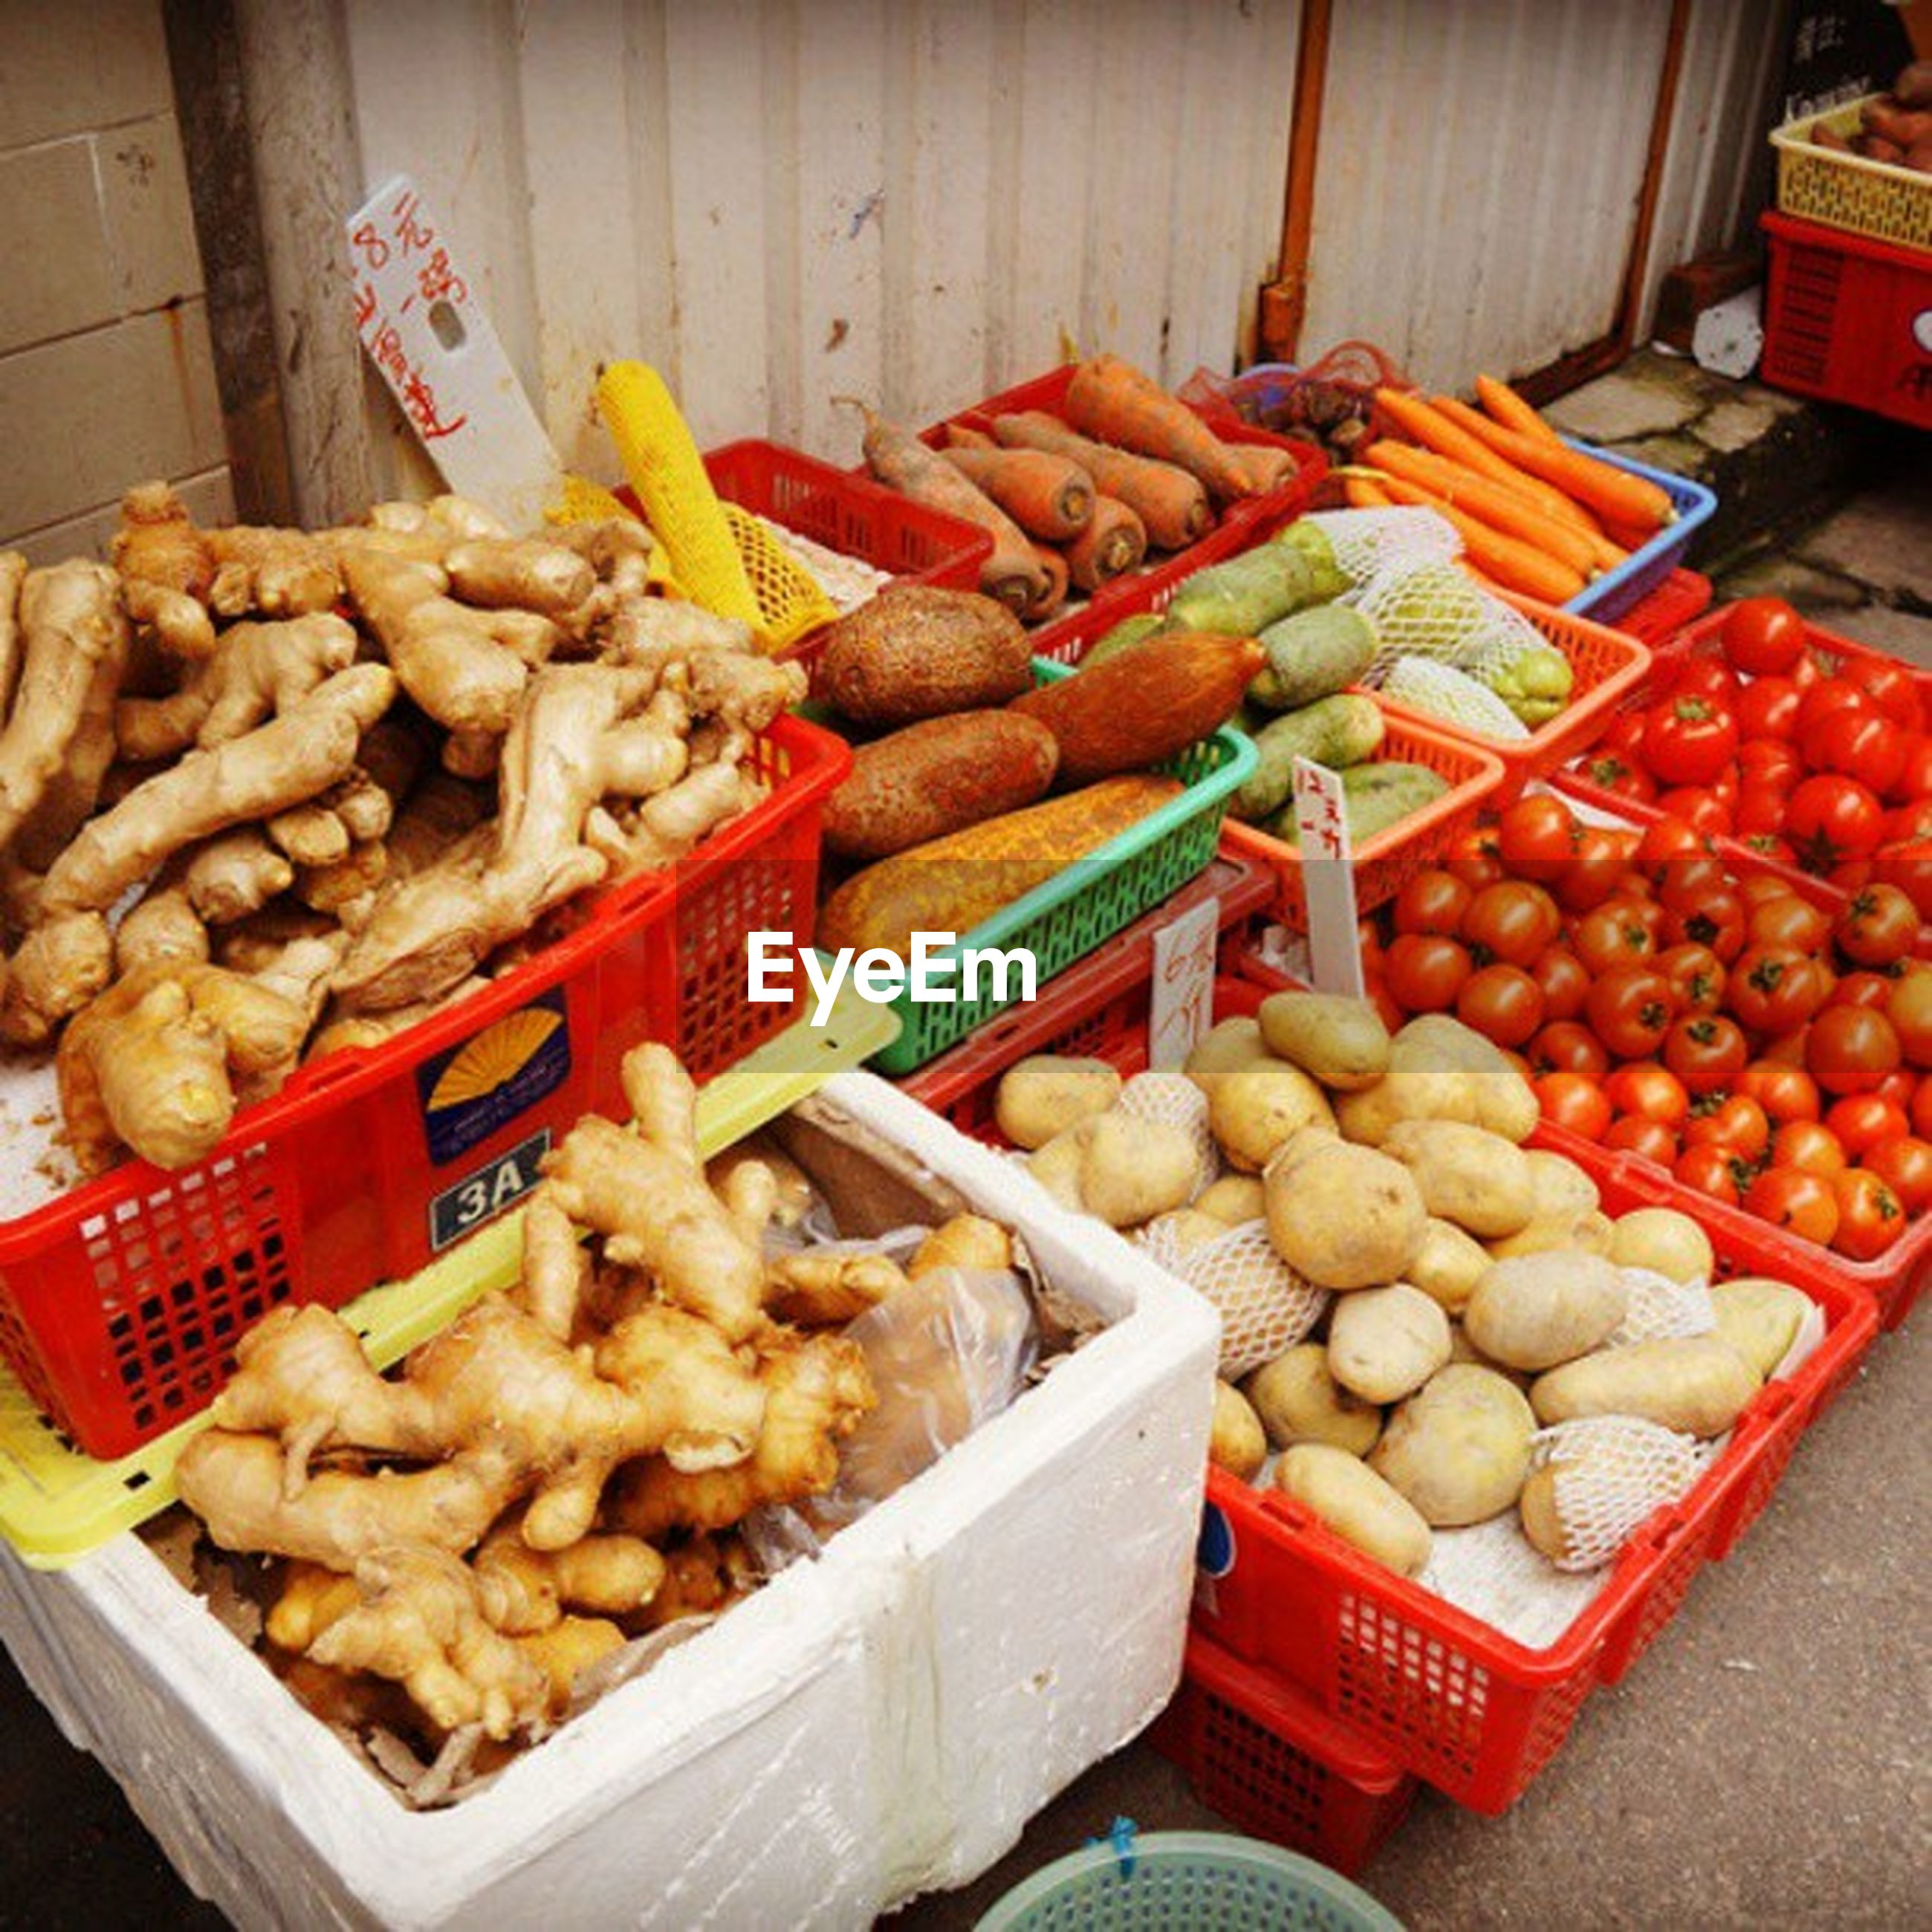 food and drink, food, freshness, healthy eating, large group of objects, for sale, abundance, retail, indoors, variation, market, market stall, choice, still life, vegetable, price tag, high angle view, sale, arrangement, display